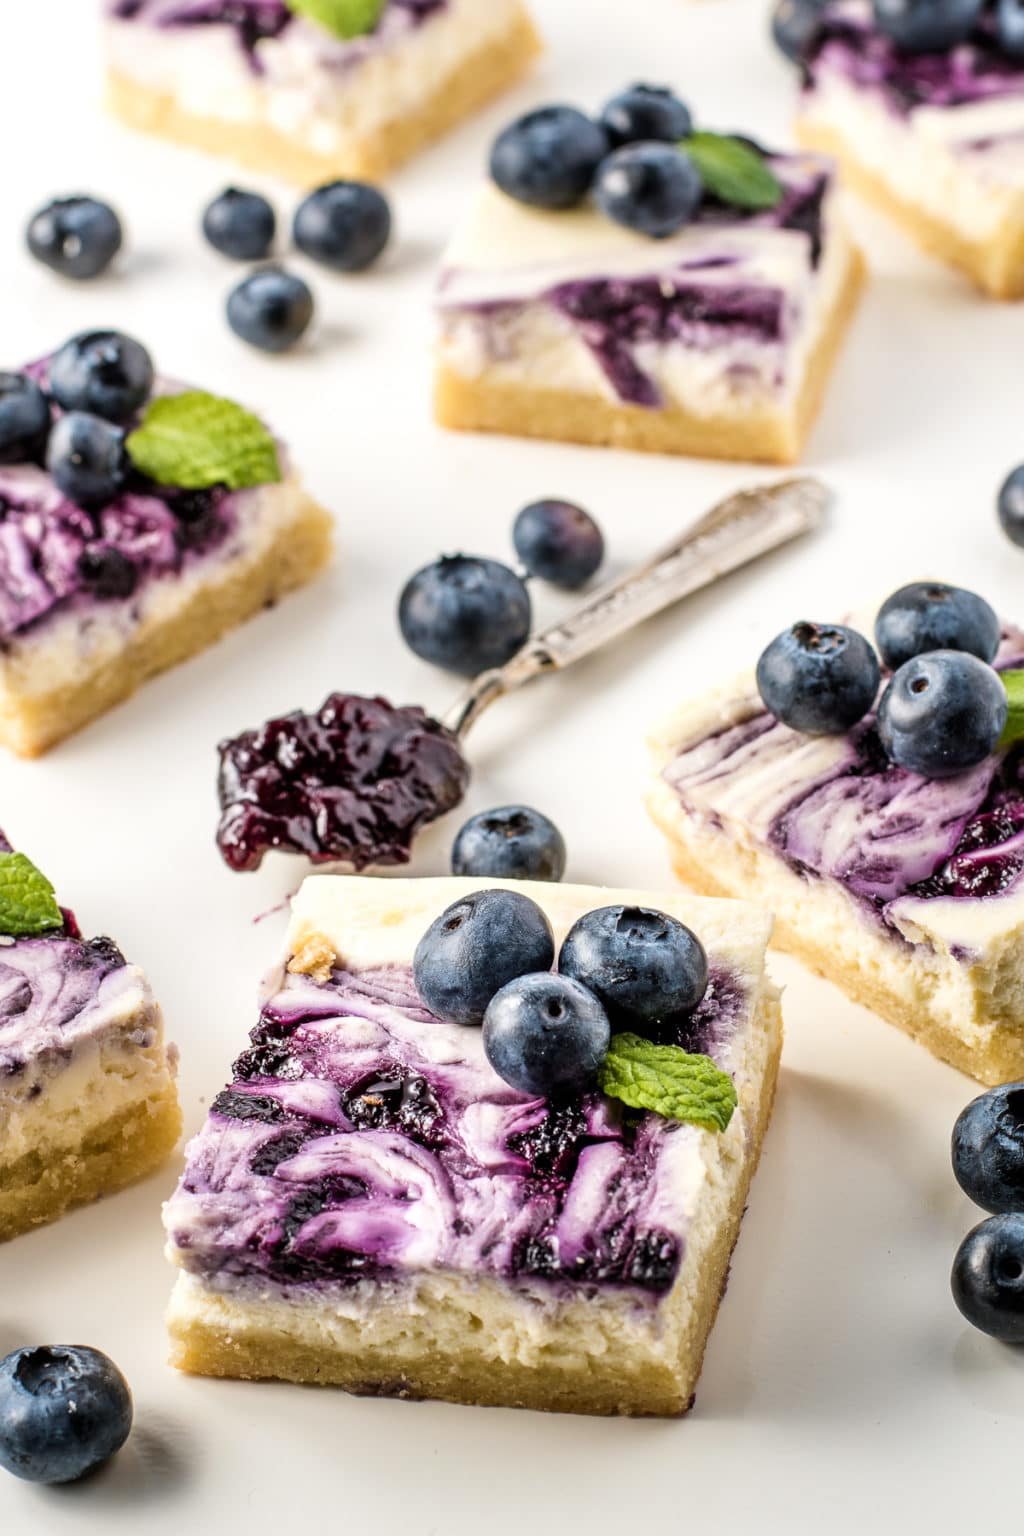 Blueberry cheesecake bars topped with swirls of pureed blueberries, fresh blueberries, and sprigs of mint